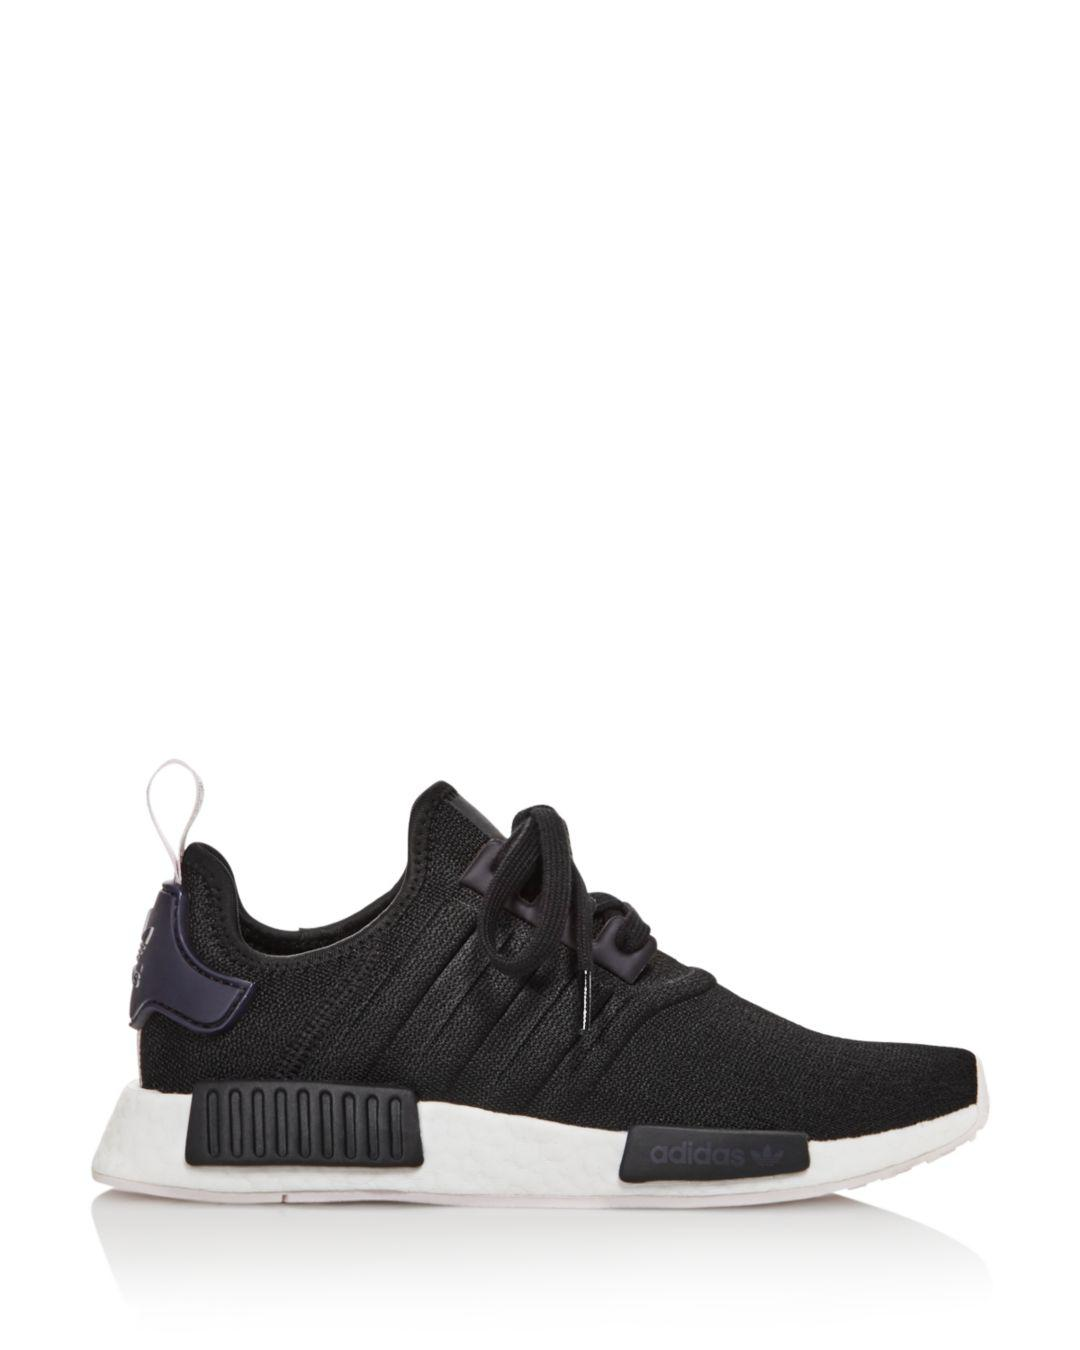 a91690c8863f9 Lyst - adidas Women s Nmd R1 Knit Lace Up Sneakers in Black